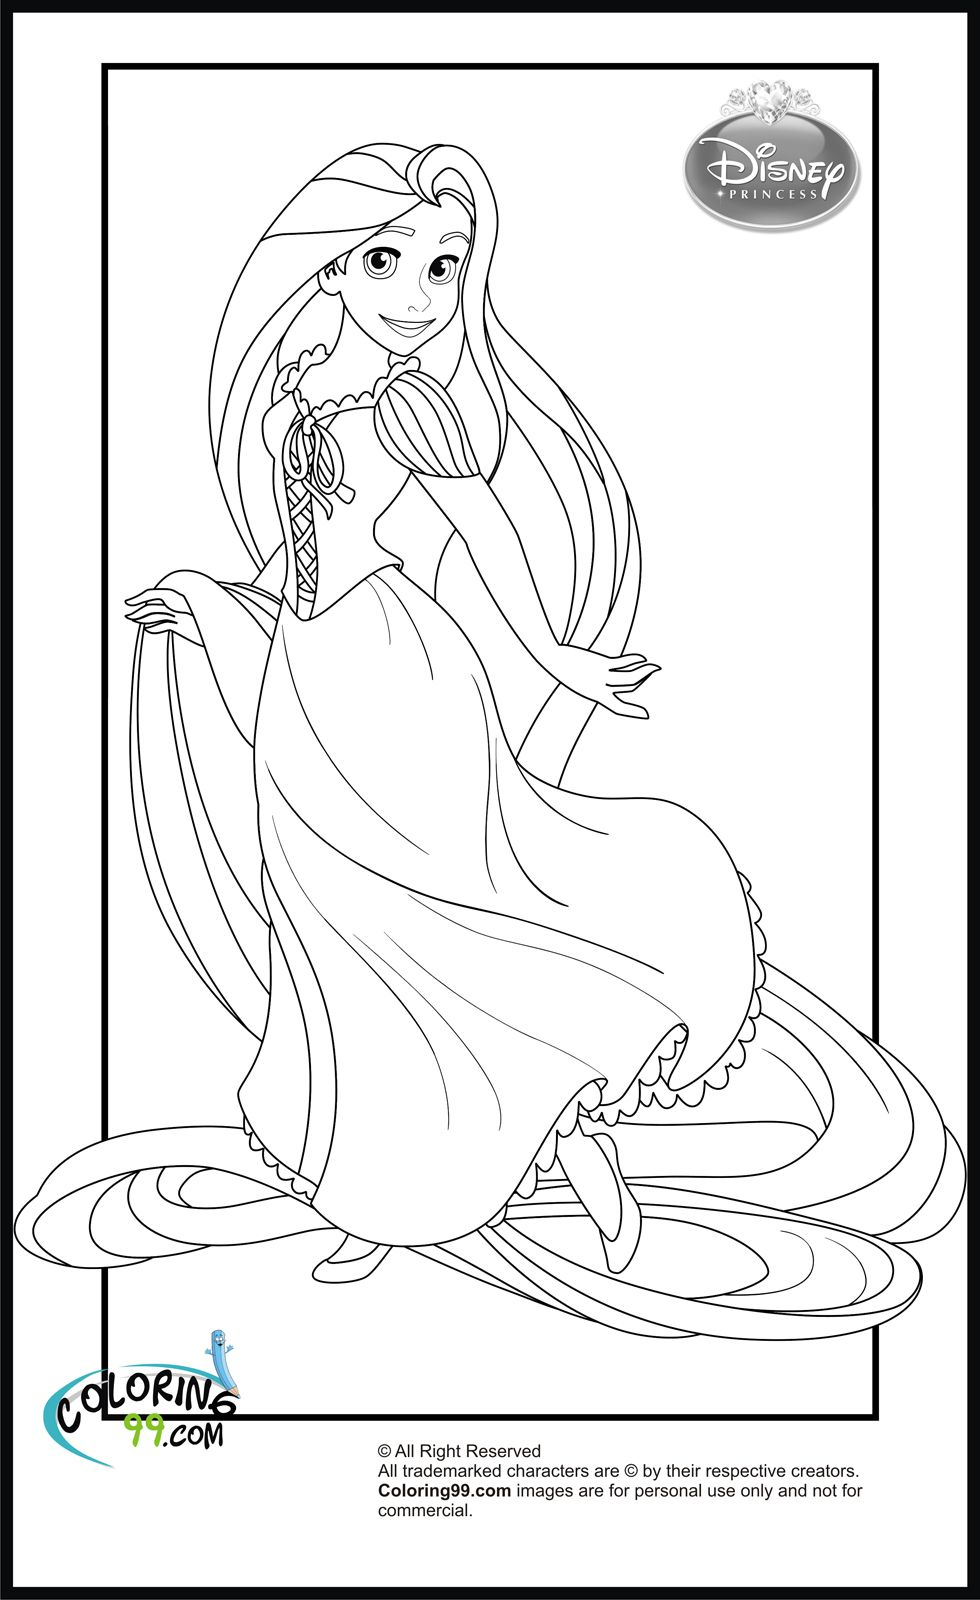 Disney Princess Rapunzel Coloring Pages